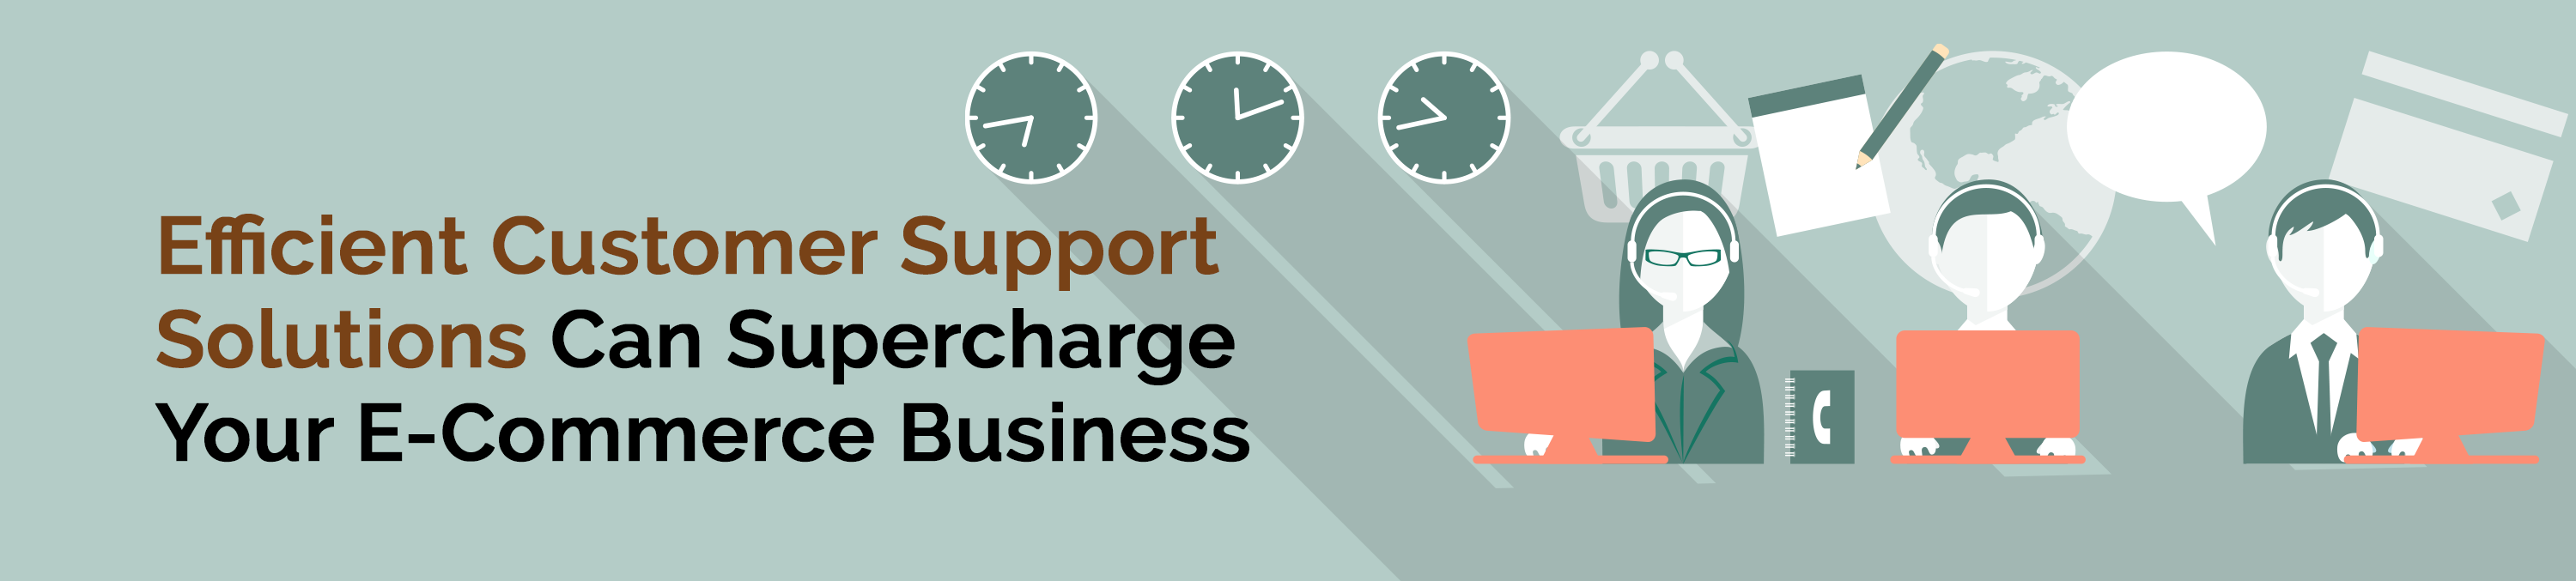 Customer Support Solutions Can Supercharge E-Commerce Business